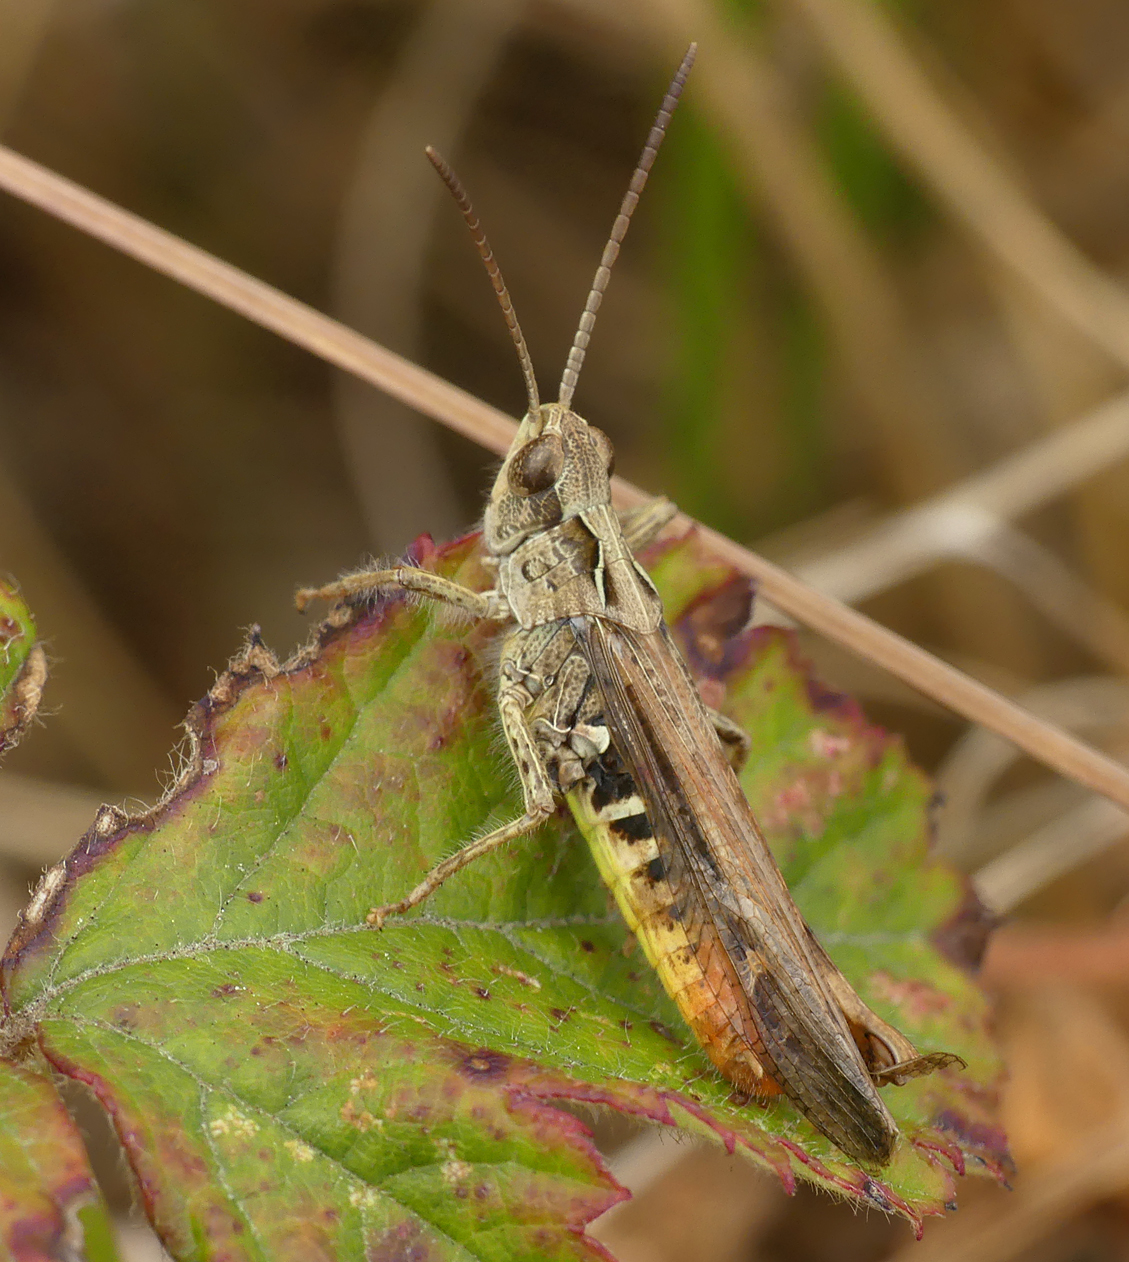 Field Grasshopper - L'Ancresse, 17 Jul 18